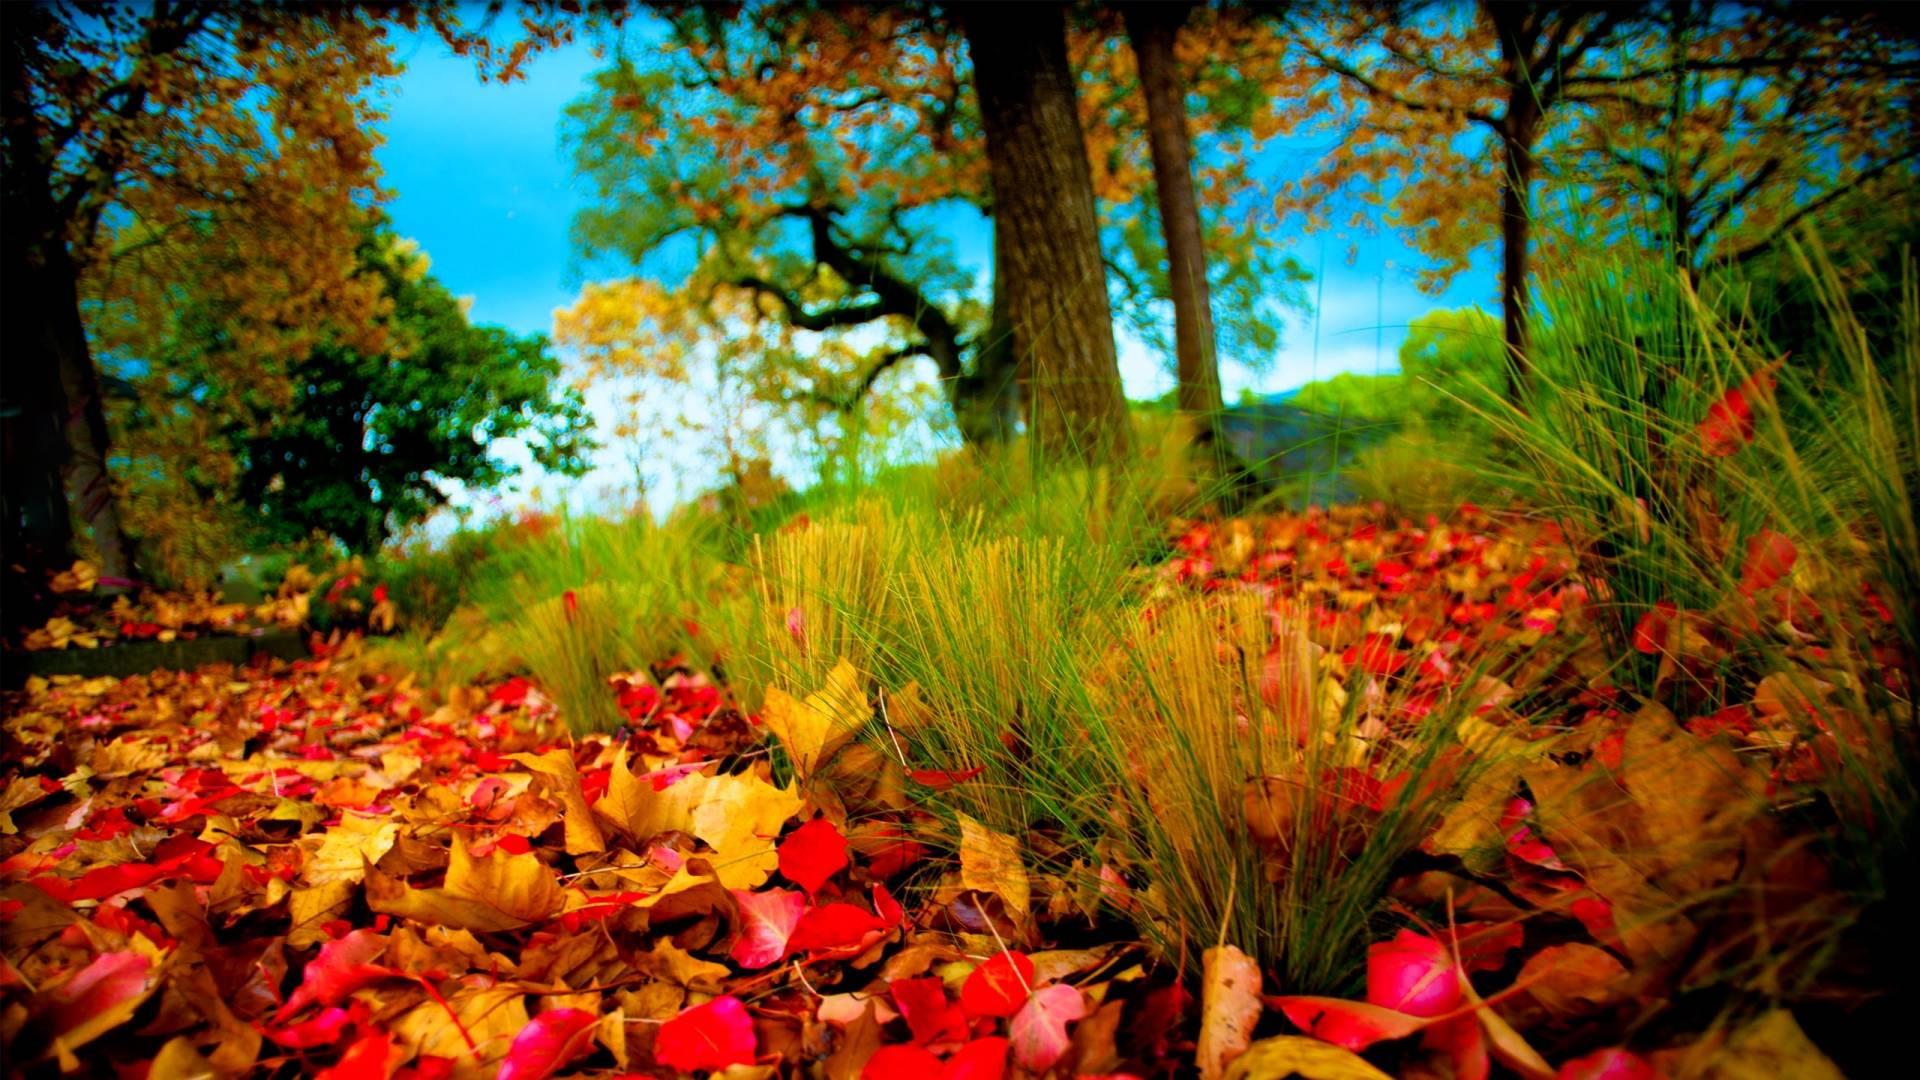 Hd wallpaper wap - Fall Hd Wallpapers 1080p Hd Wallpapers Inn